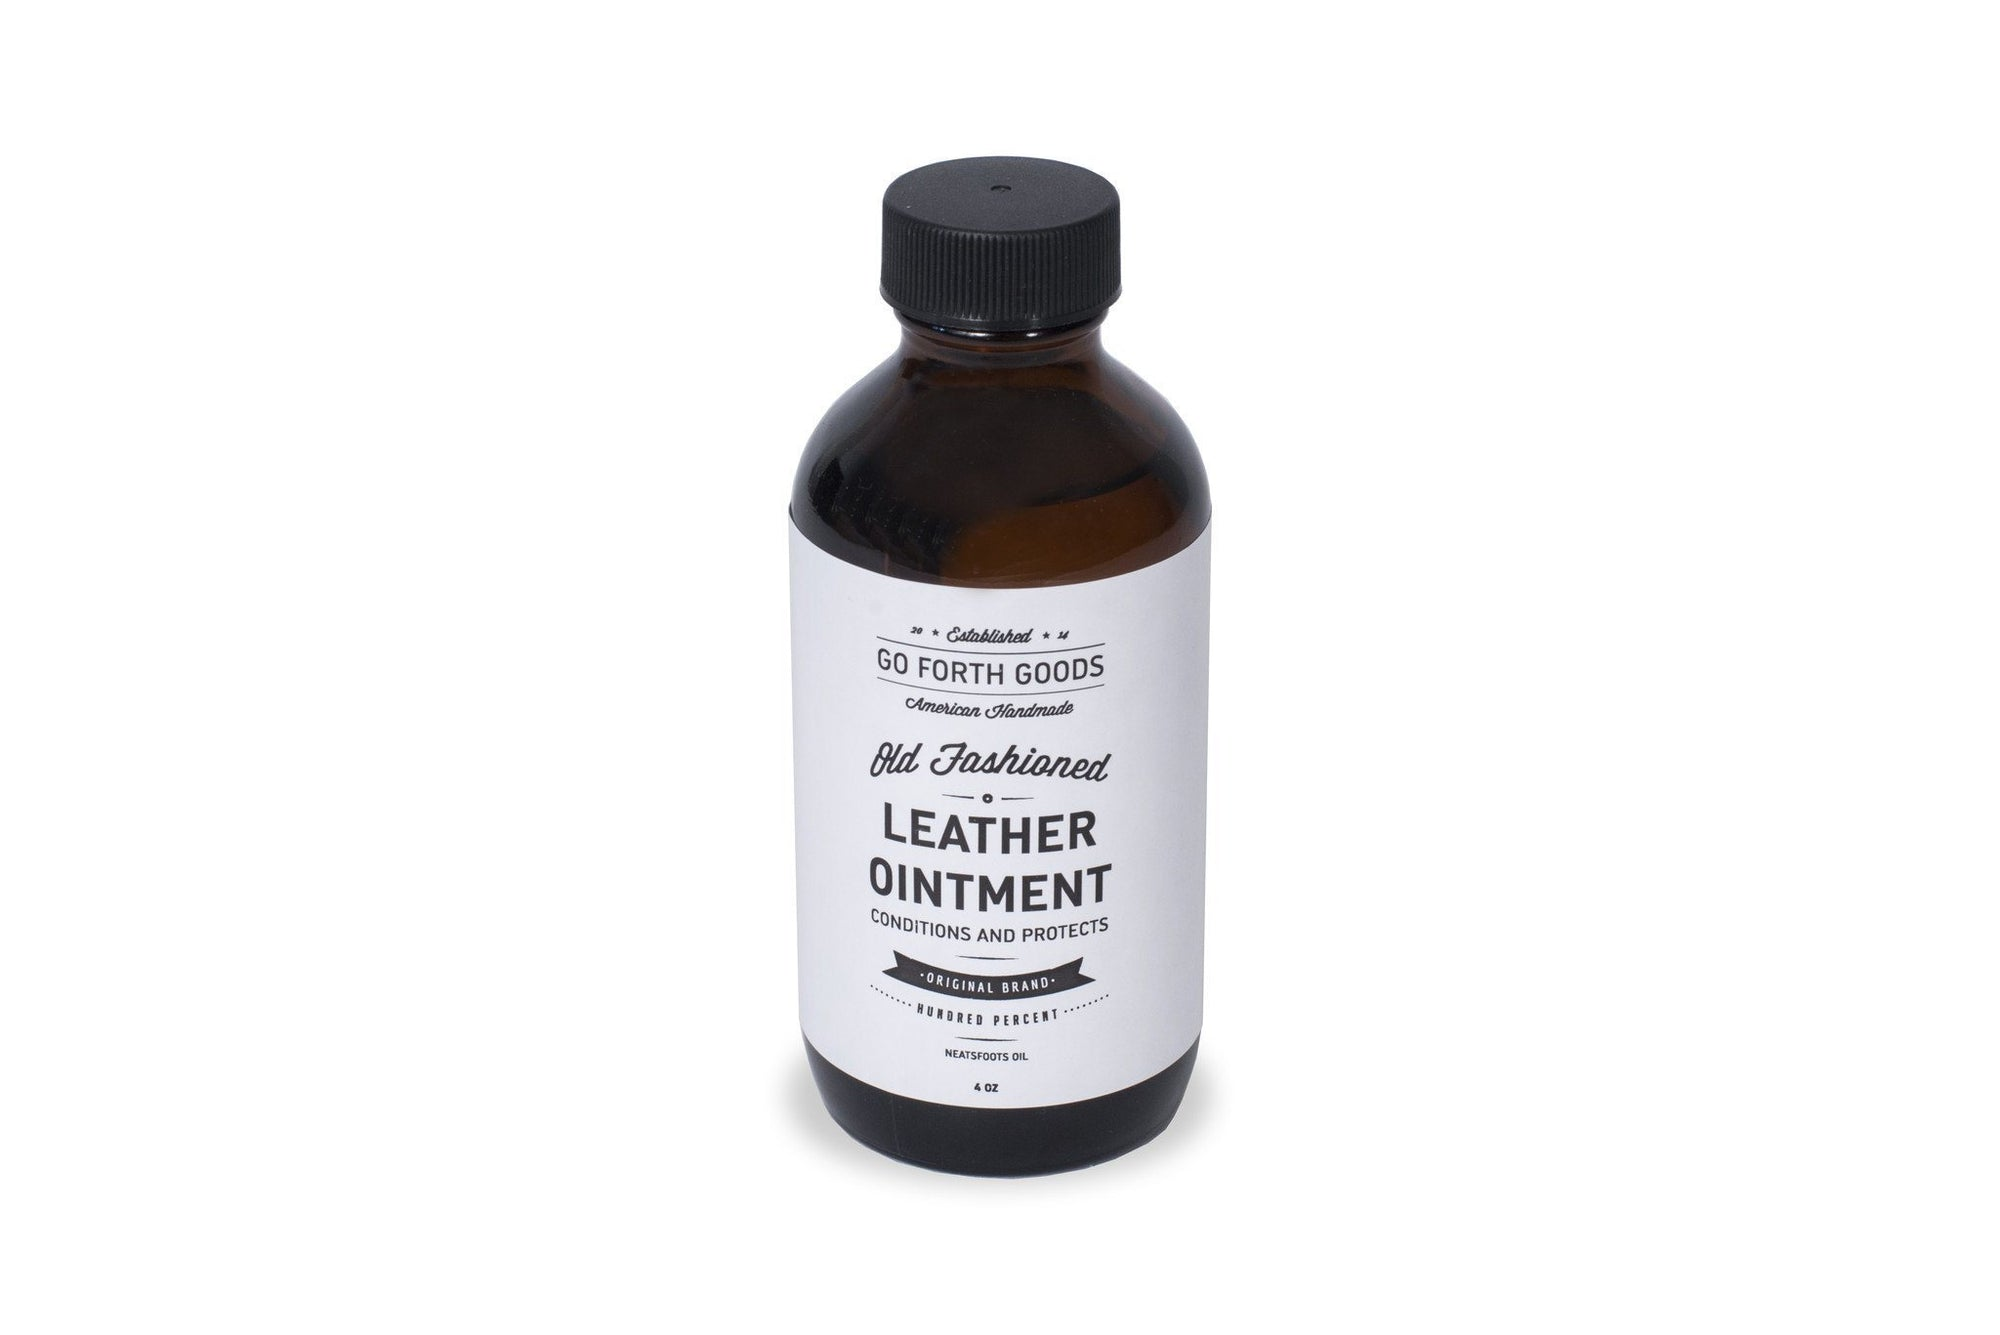 OLD FASHIONED LEATHER OINTMENT